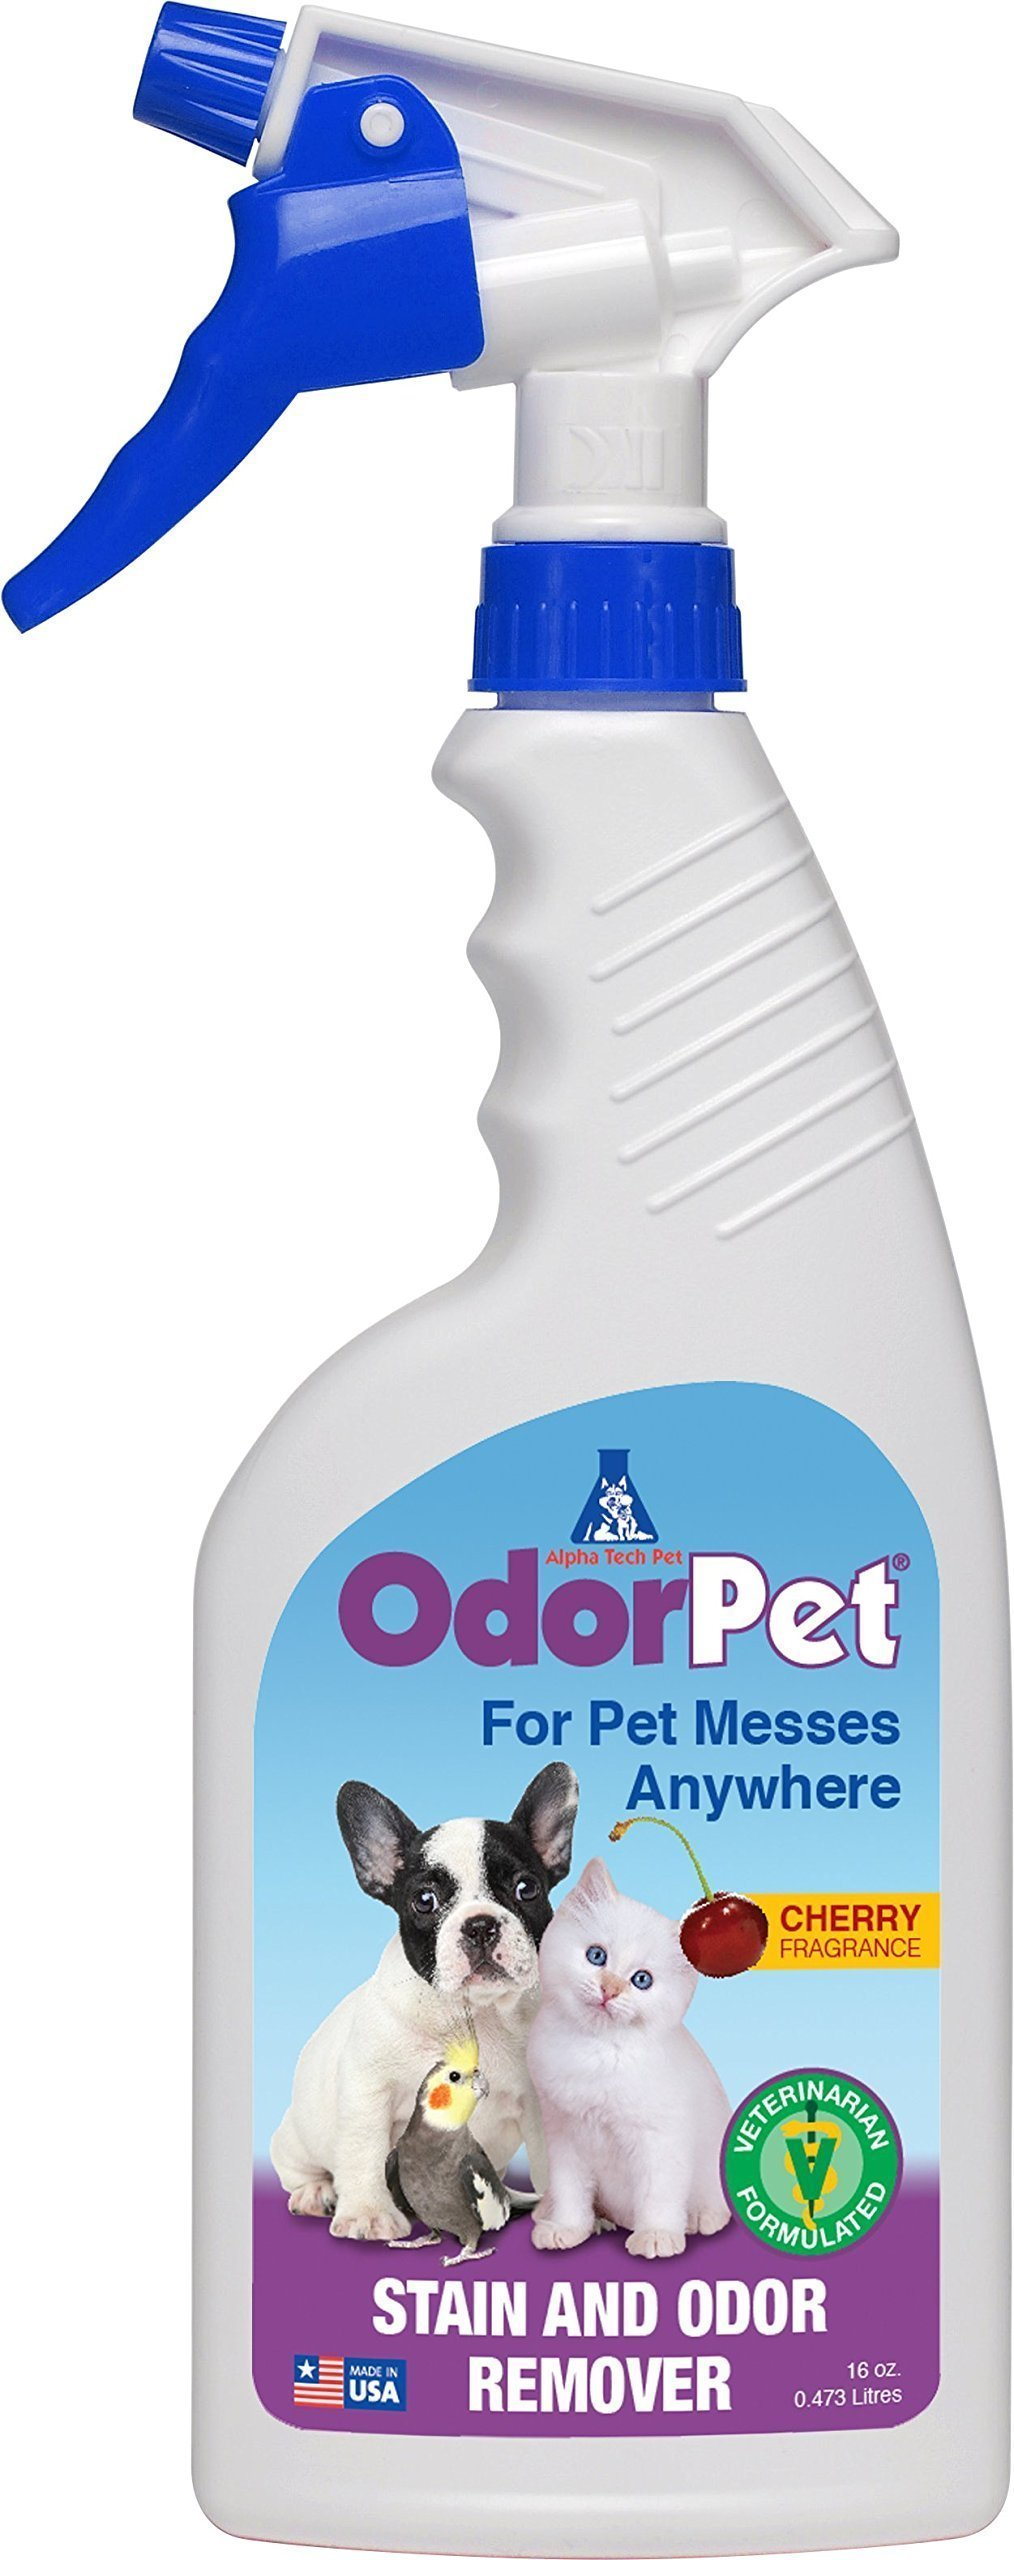 Alpha Tech Pet OdorPet Pet stain and Odor Remover, 16oz RTU Spray Bottle